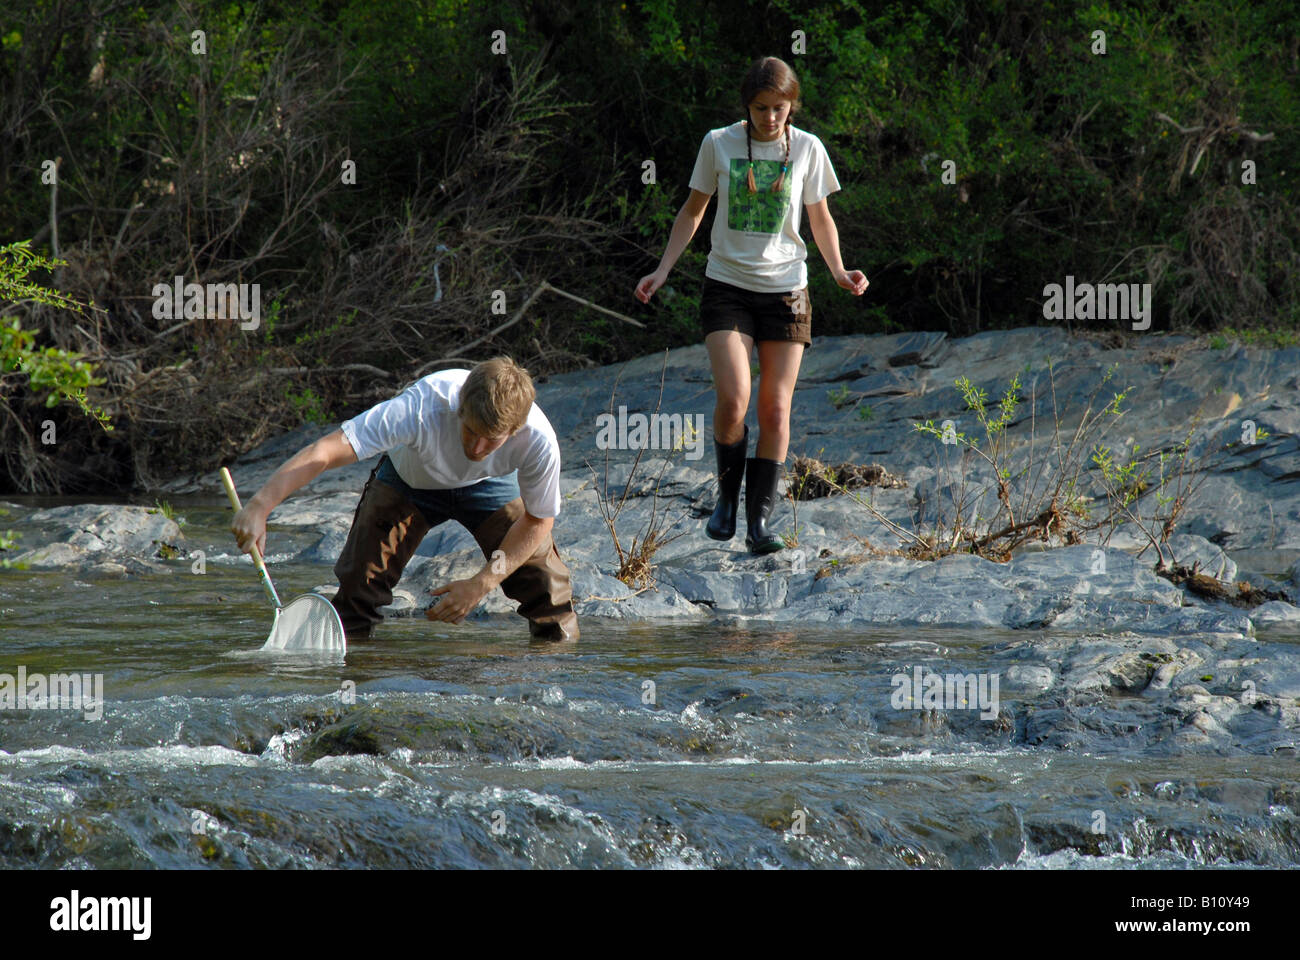 Environmental Science School students - Stock Image